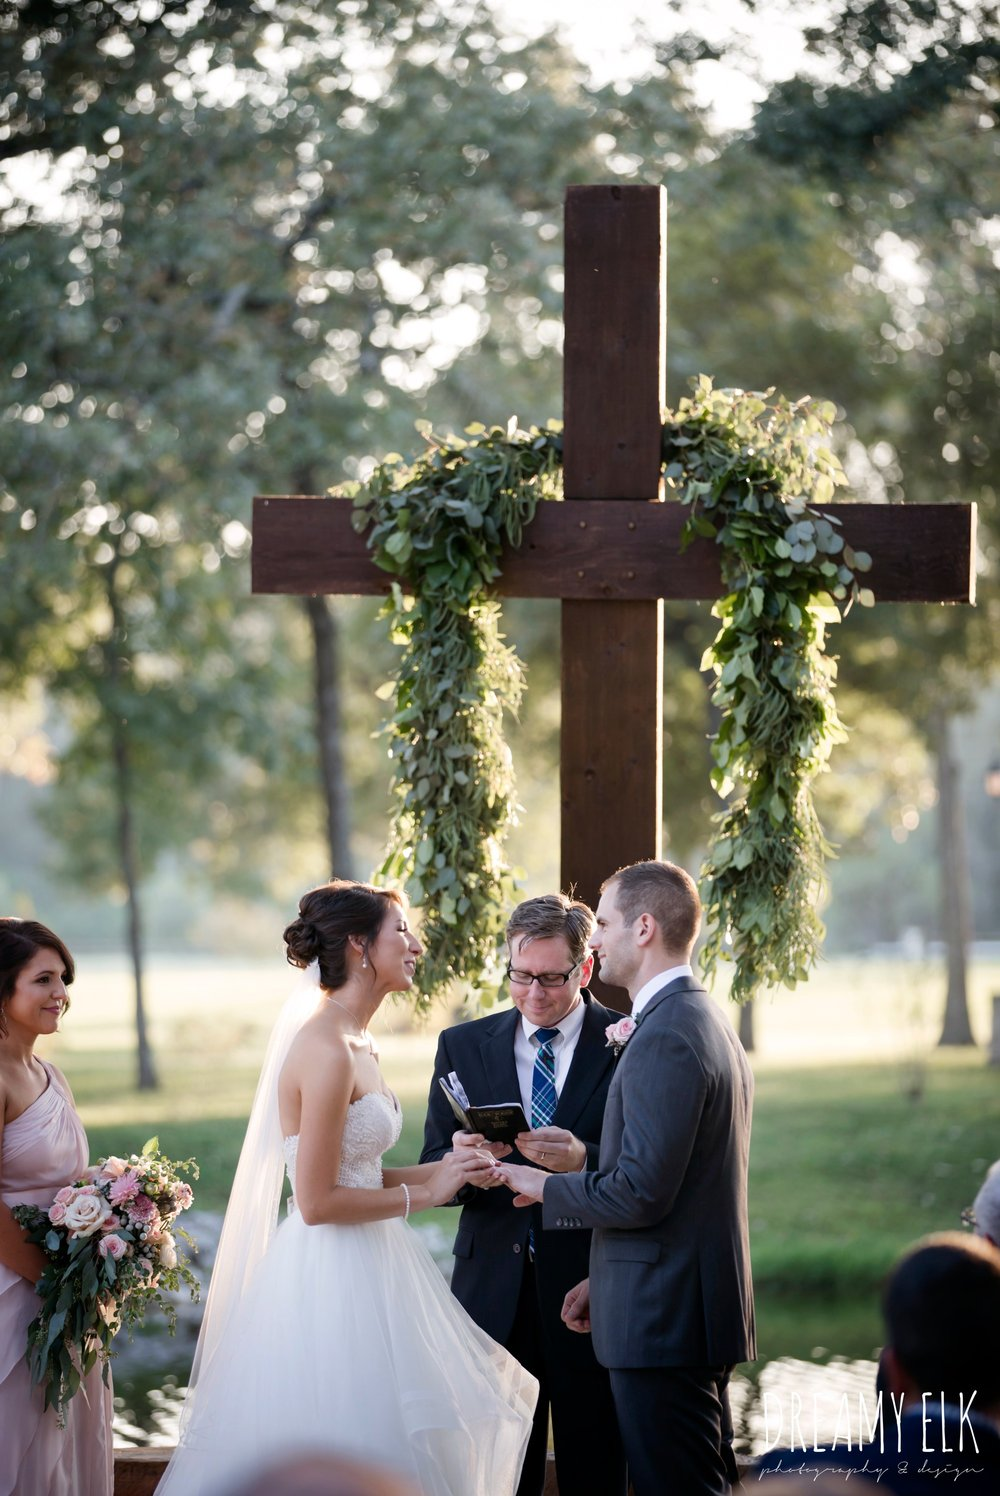 sunset wedding ceremony, bride and groom exchanging rings, outdoor fall october wedding photo, blush and gray wedding, balmorhea weddings and events, dreamy elk photography and design, austin texas wedding photographer